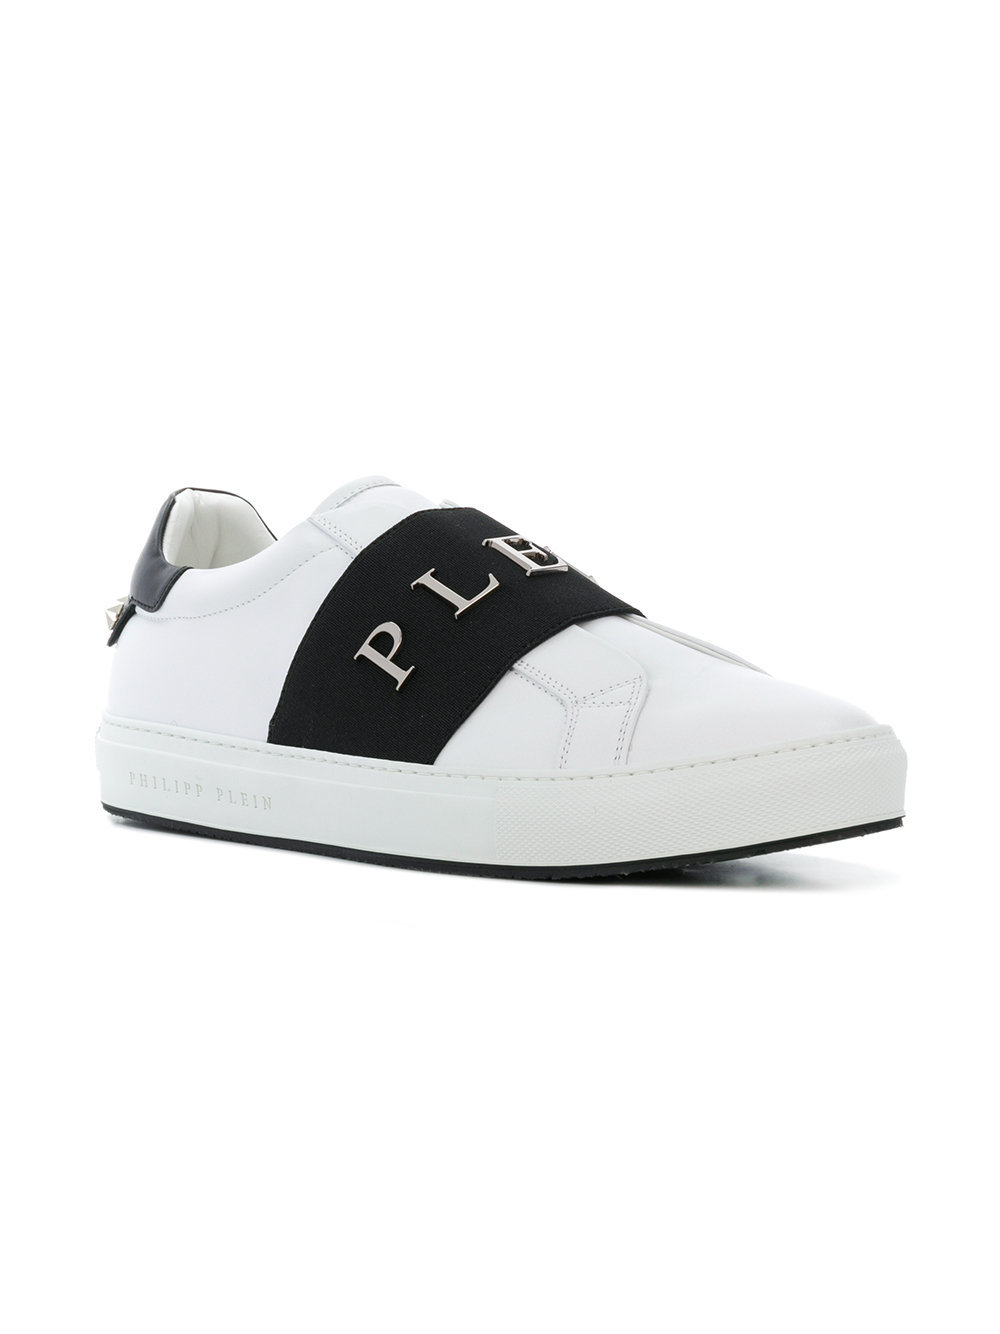 Buy Plein Philipp Low How amp; Sneakers Wear Logo Top Where To Front Sf7wp4qfC